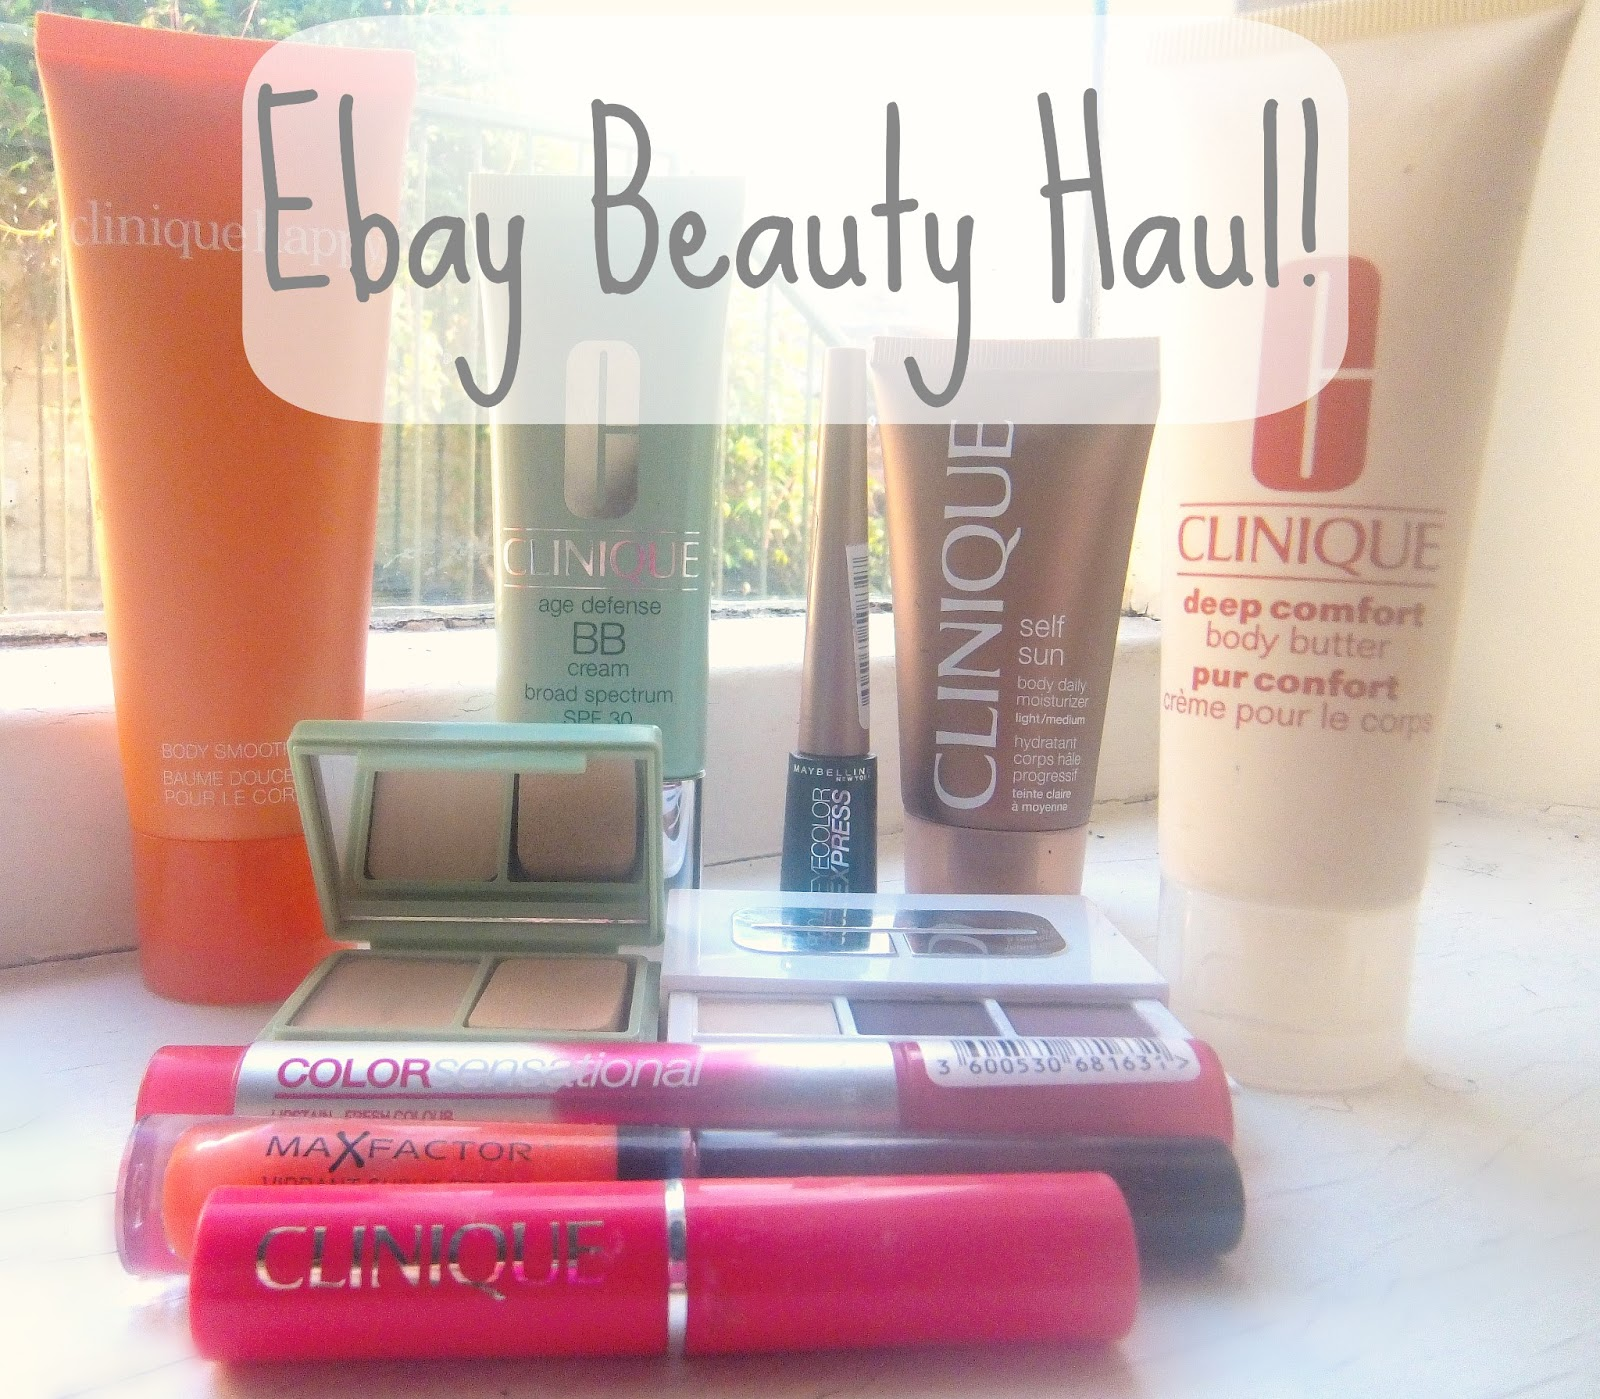 Ebay beauty haul, make up haul, clinique make up, clinique beauty products, max factor lip gloss, maybelline lip stain